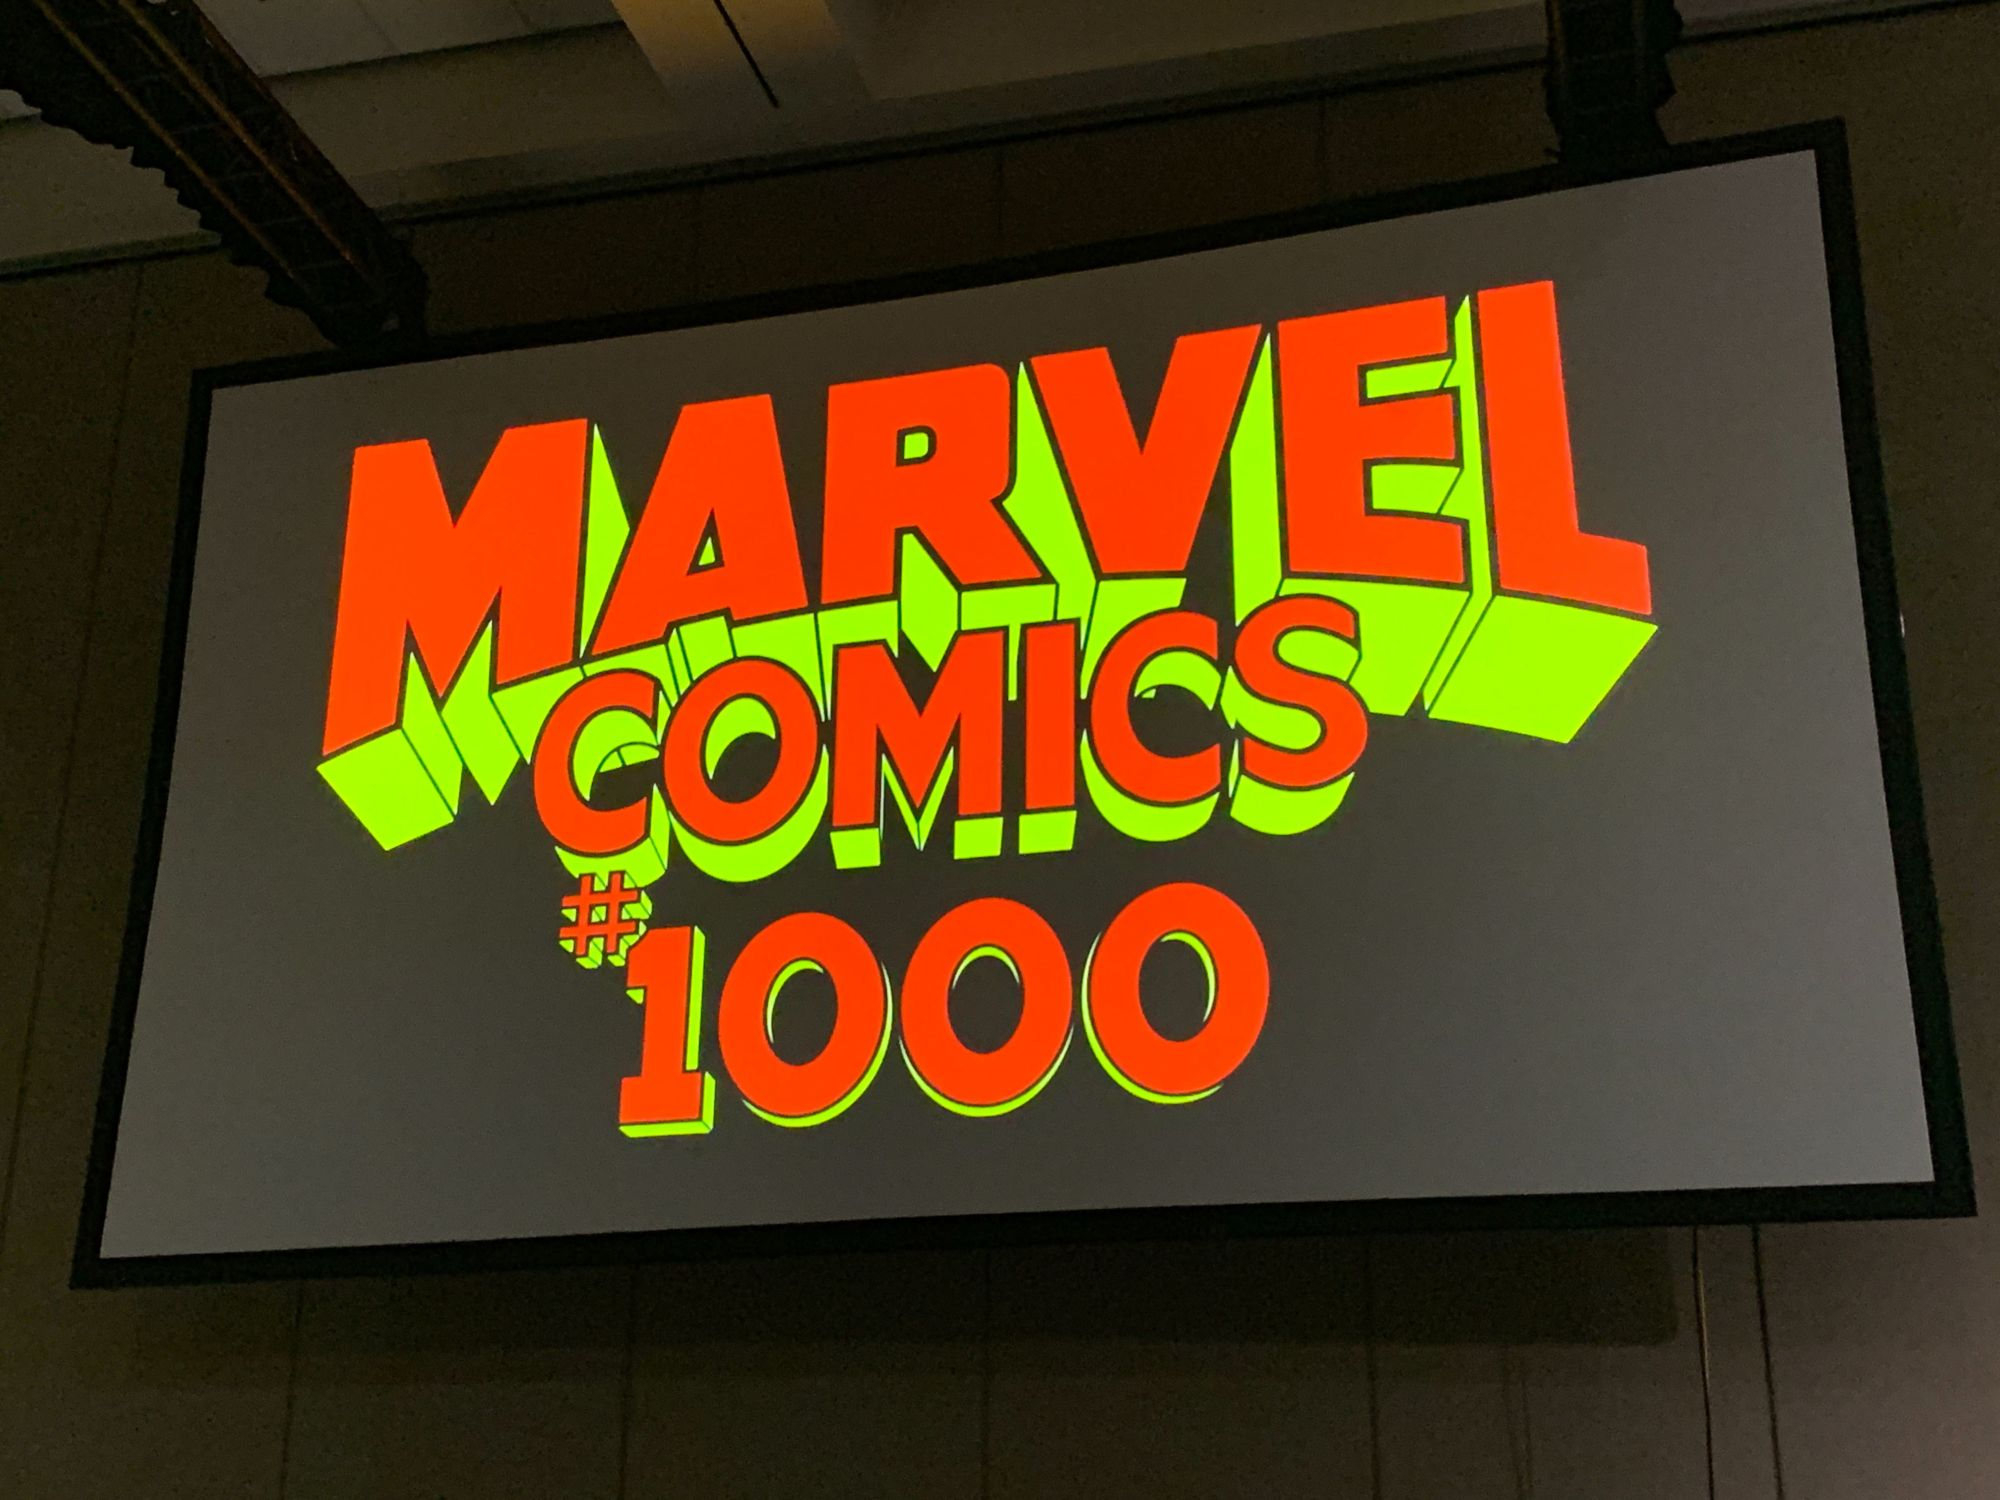 Six More Teams Confirmed For Marvel Comics #1000 Include Jonathan Hickman, Priest, Ryan North, Brian Stelfreeze and Steve Rude